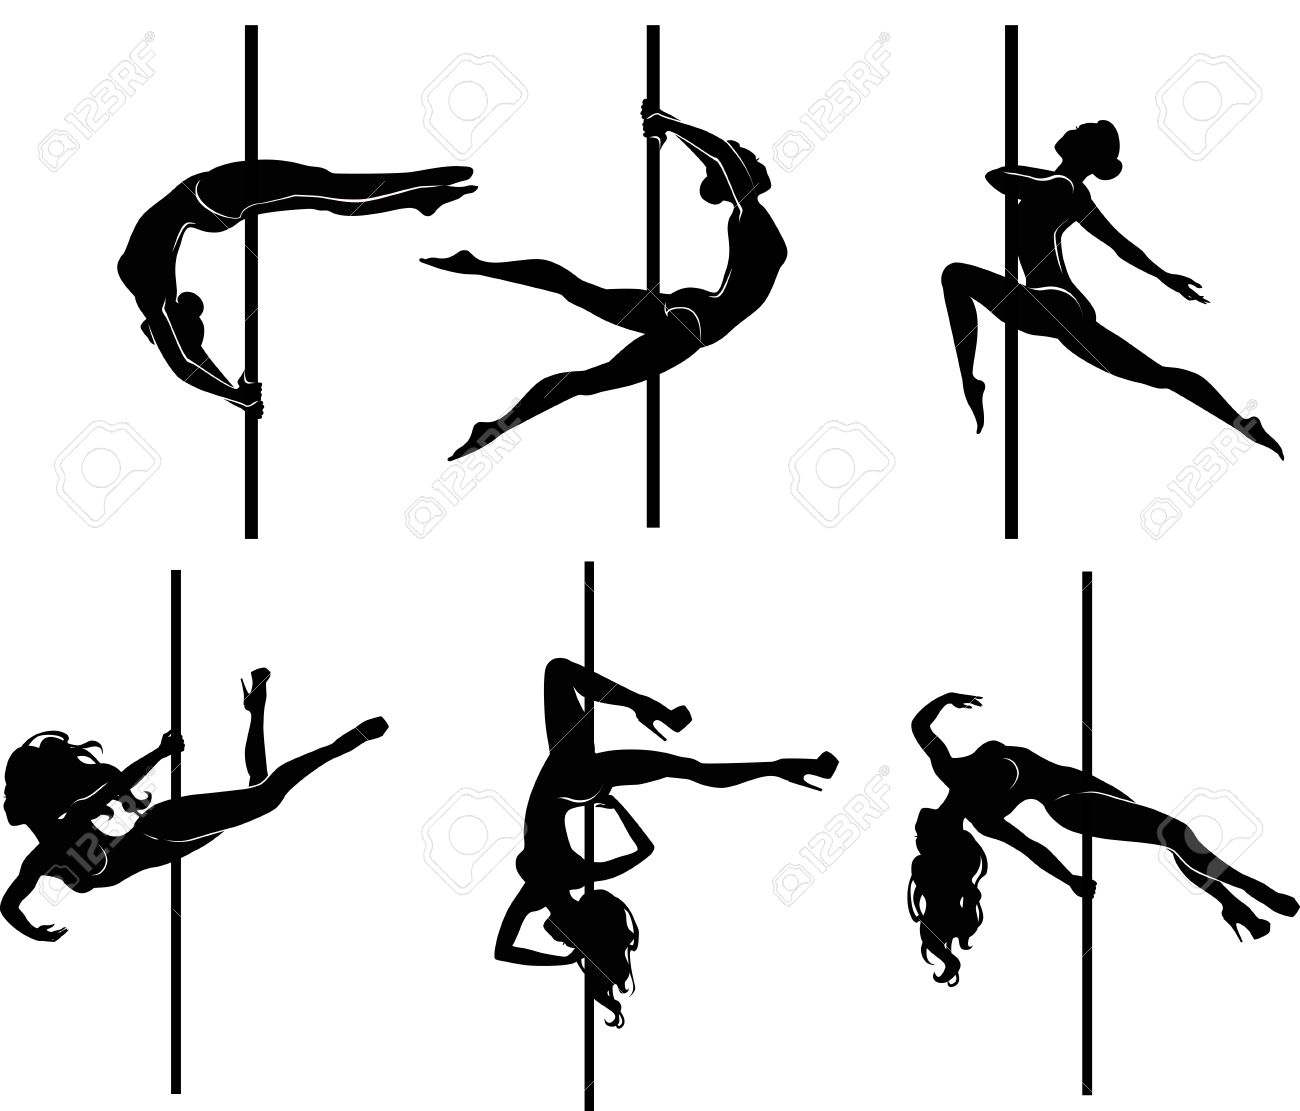 stripper pole  Vector illustration of pole dancers silhouettes in different  poses Illustration. Stripper Pole Stock Photos   Pictures  Royalty Free Stripper Pole